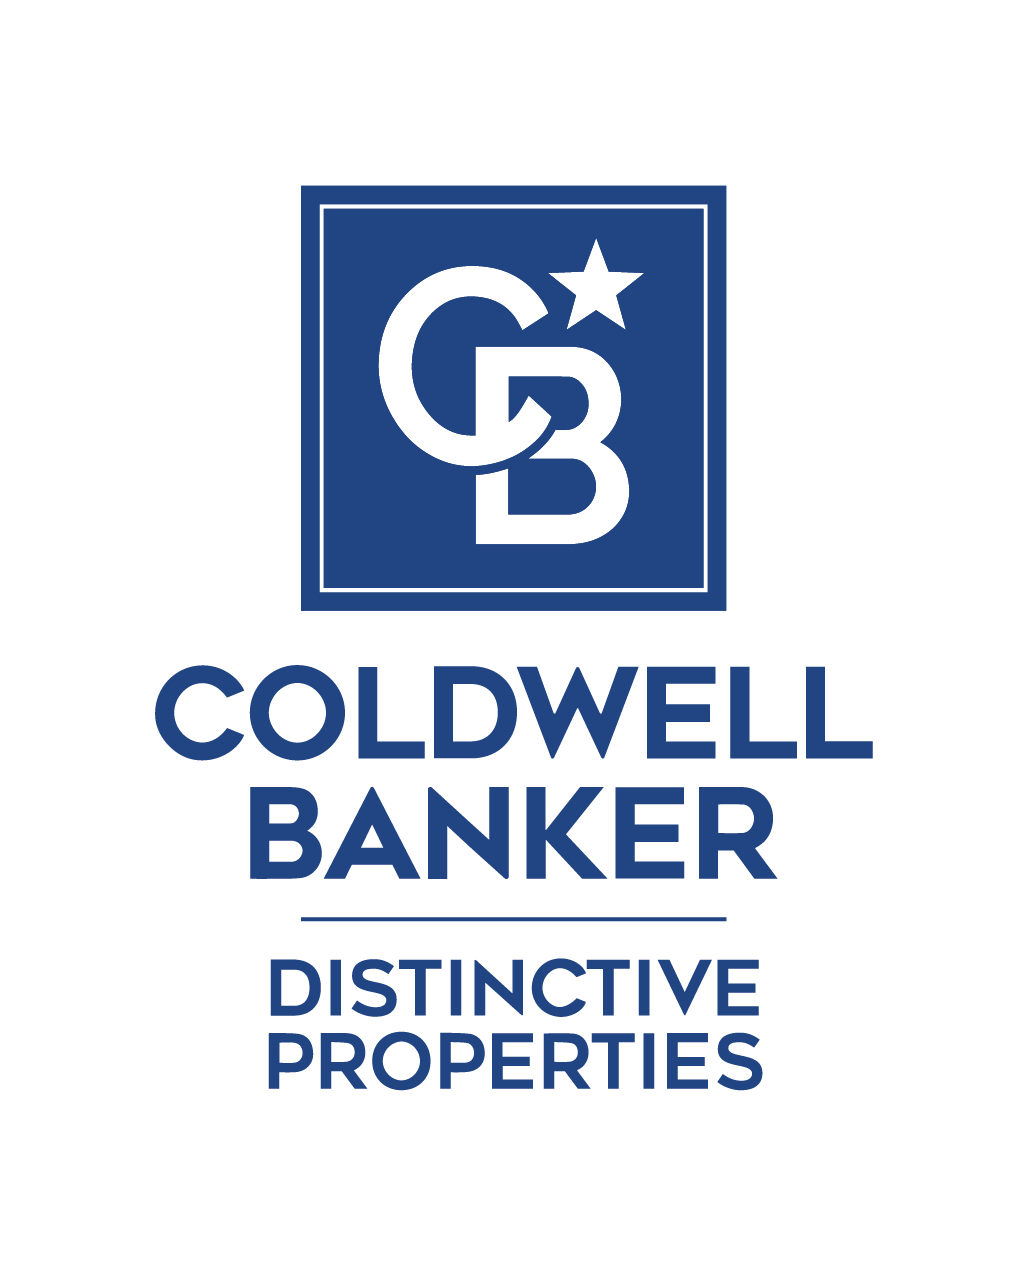 David Wadley - Coldwell Banker Distinctive Properties Logo